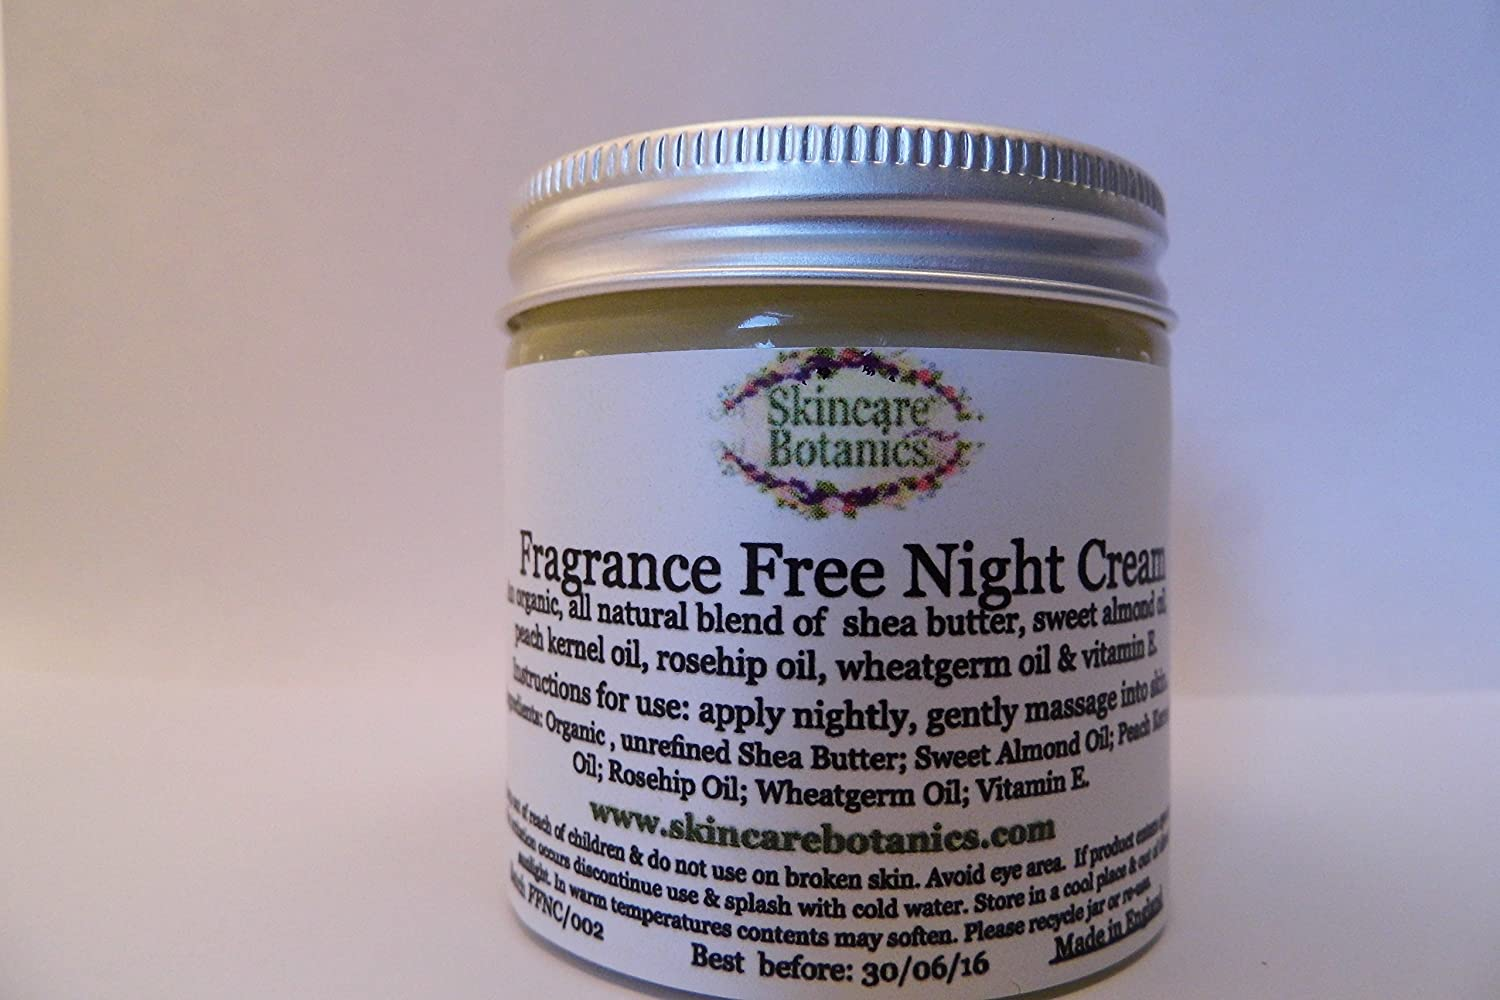 All Natural & Organic Fragrance Free Night Cream Skincare Botanics